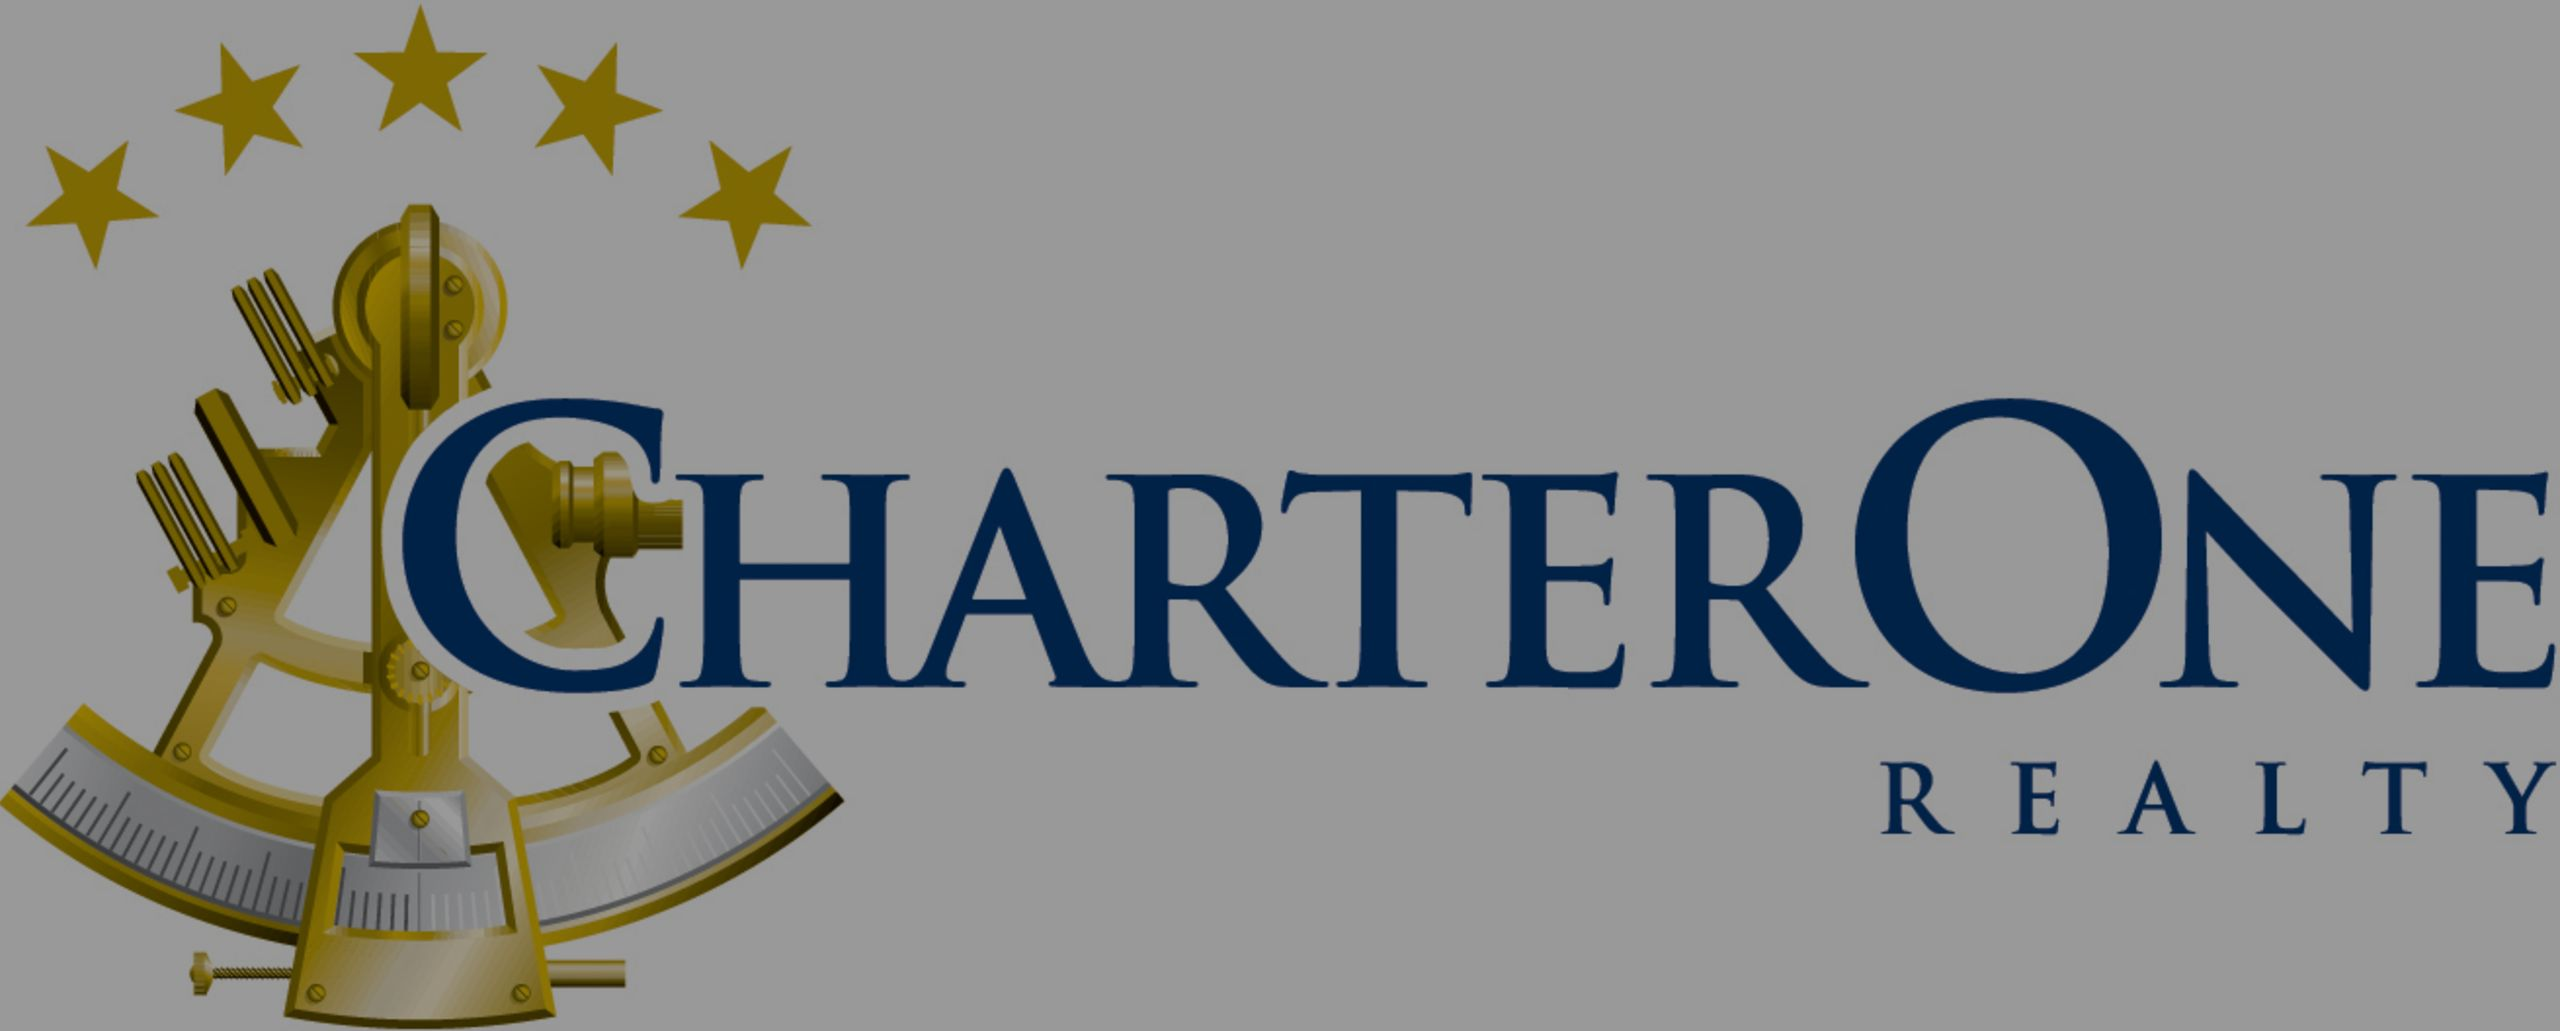 Gateway Realty Merges Into Charter One Realty Jan 1st 2016